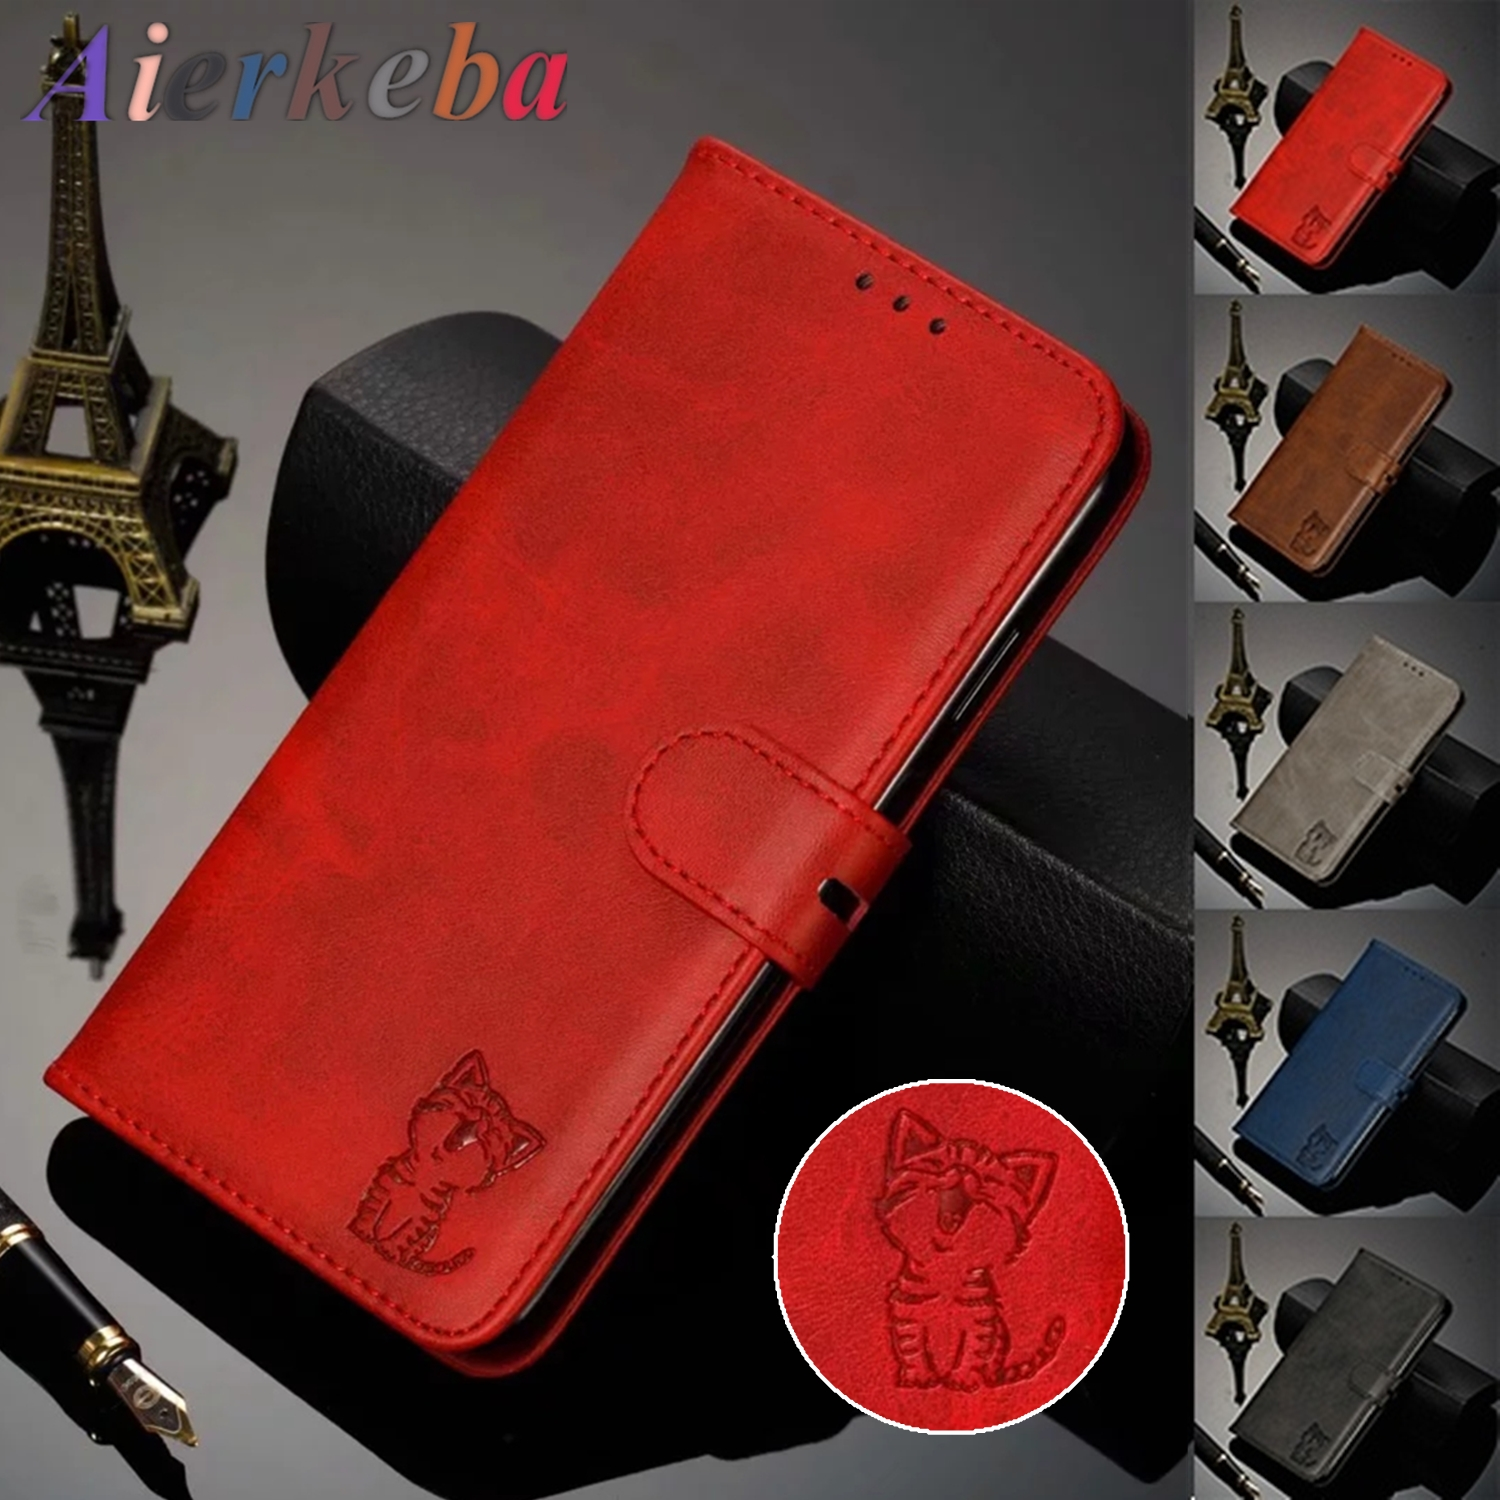 3D Embossing Cute Cat Flip Leather Case for Huawei Honor <font><b>20</b></font> P30 P20 <font><b>Mate</b></font> 30 <font><b>20</b></font> Pro <font><b>Lite</b></font> Y7 2018 Y9 Y6 Y5 2019 8x 8s Wallet Cover image